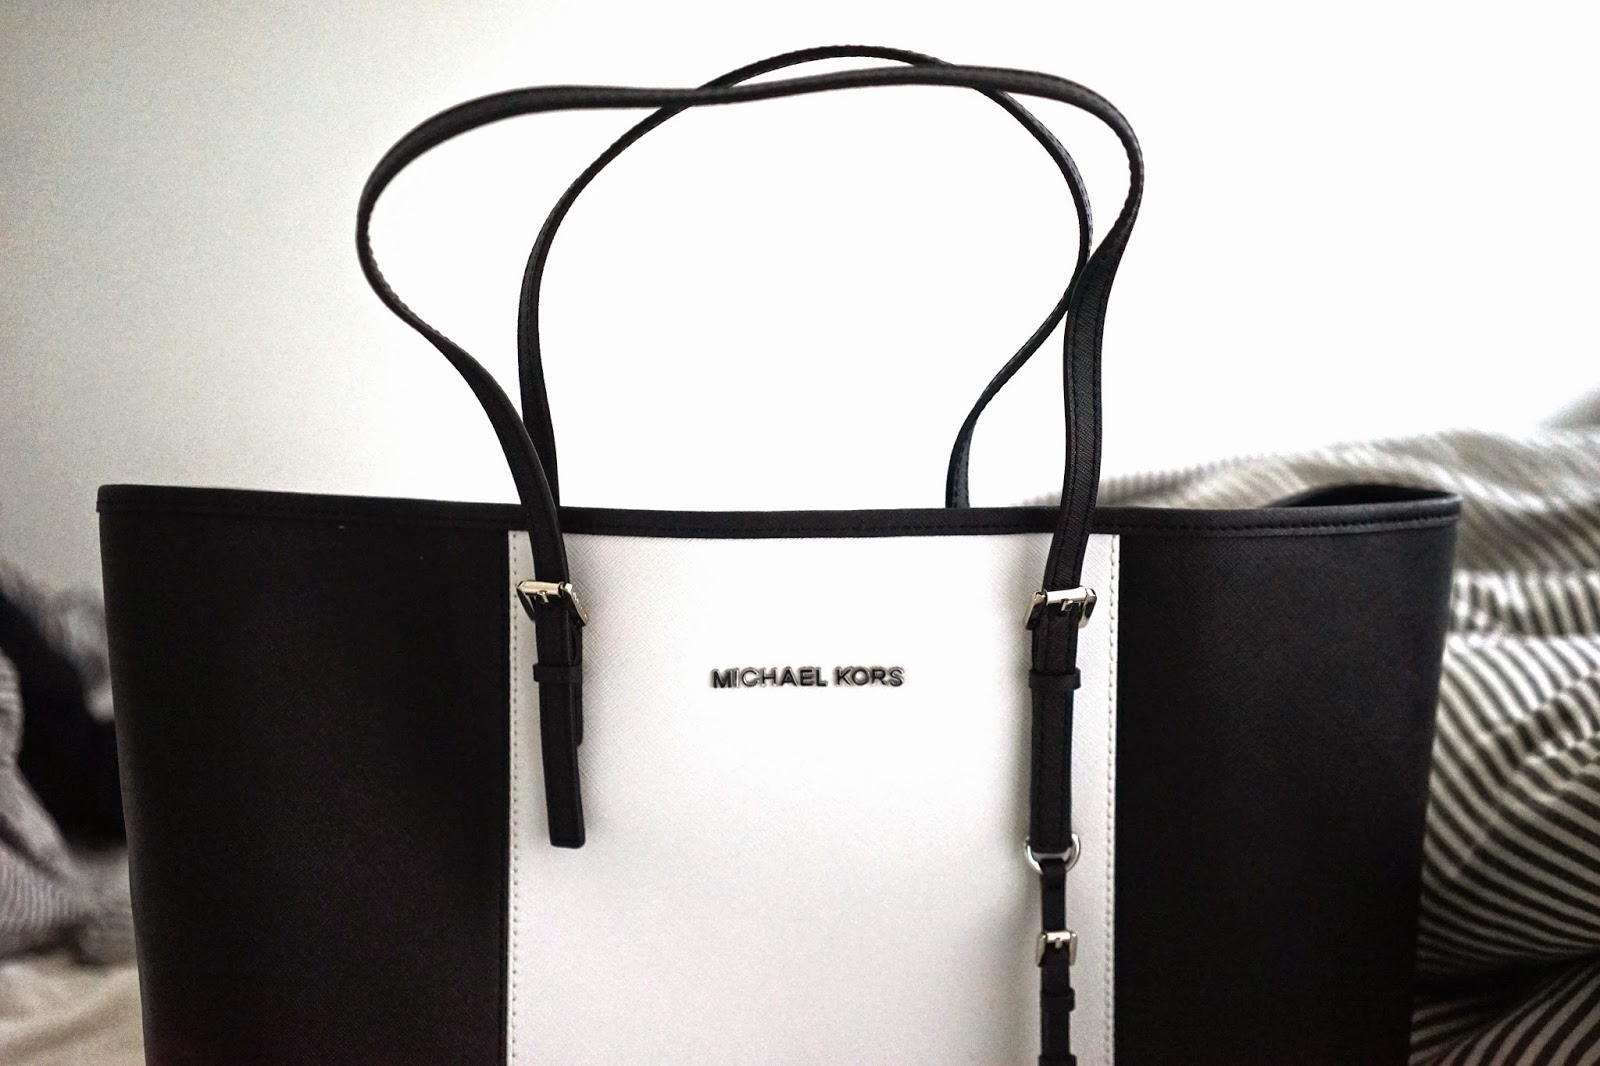 michael kors handbag competition